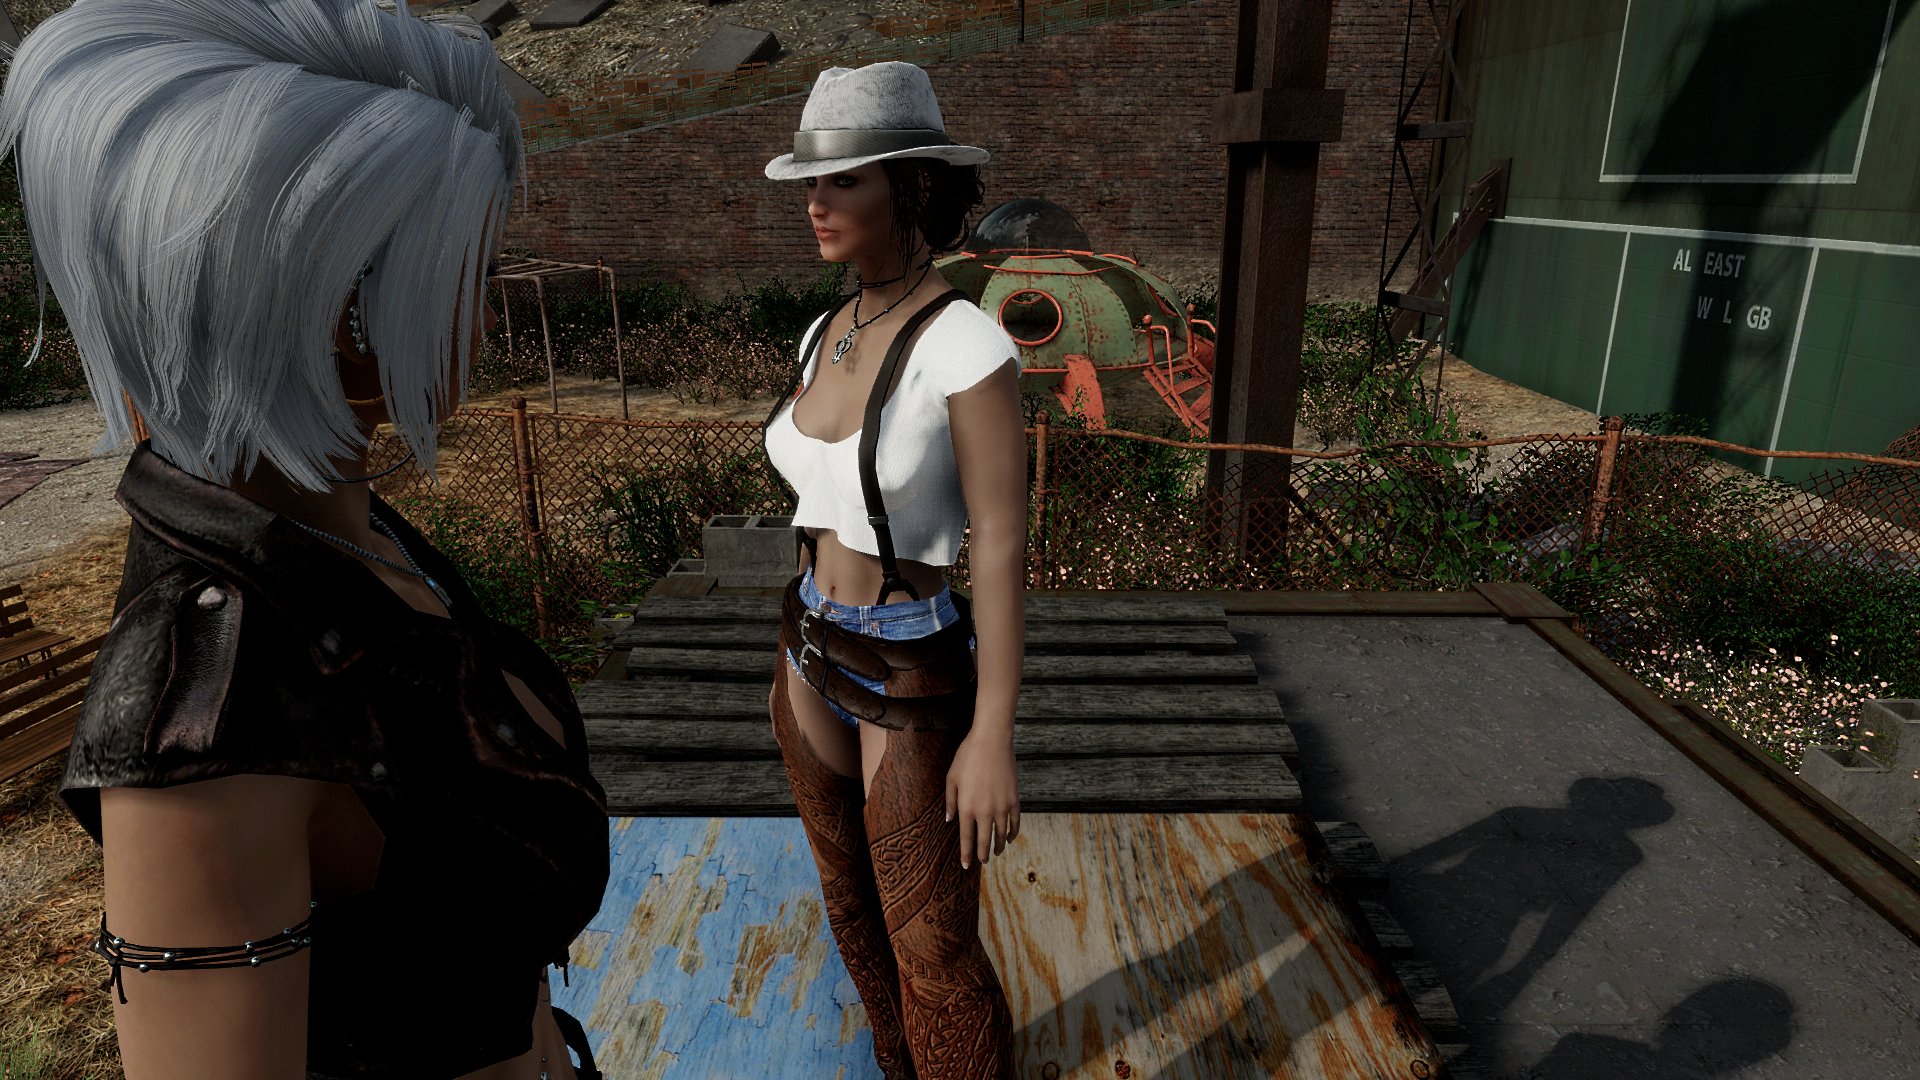 Cowgirl chaps at Fallout 4 Nexus - Mods and community